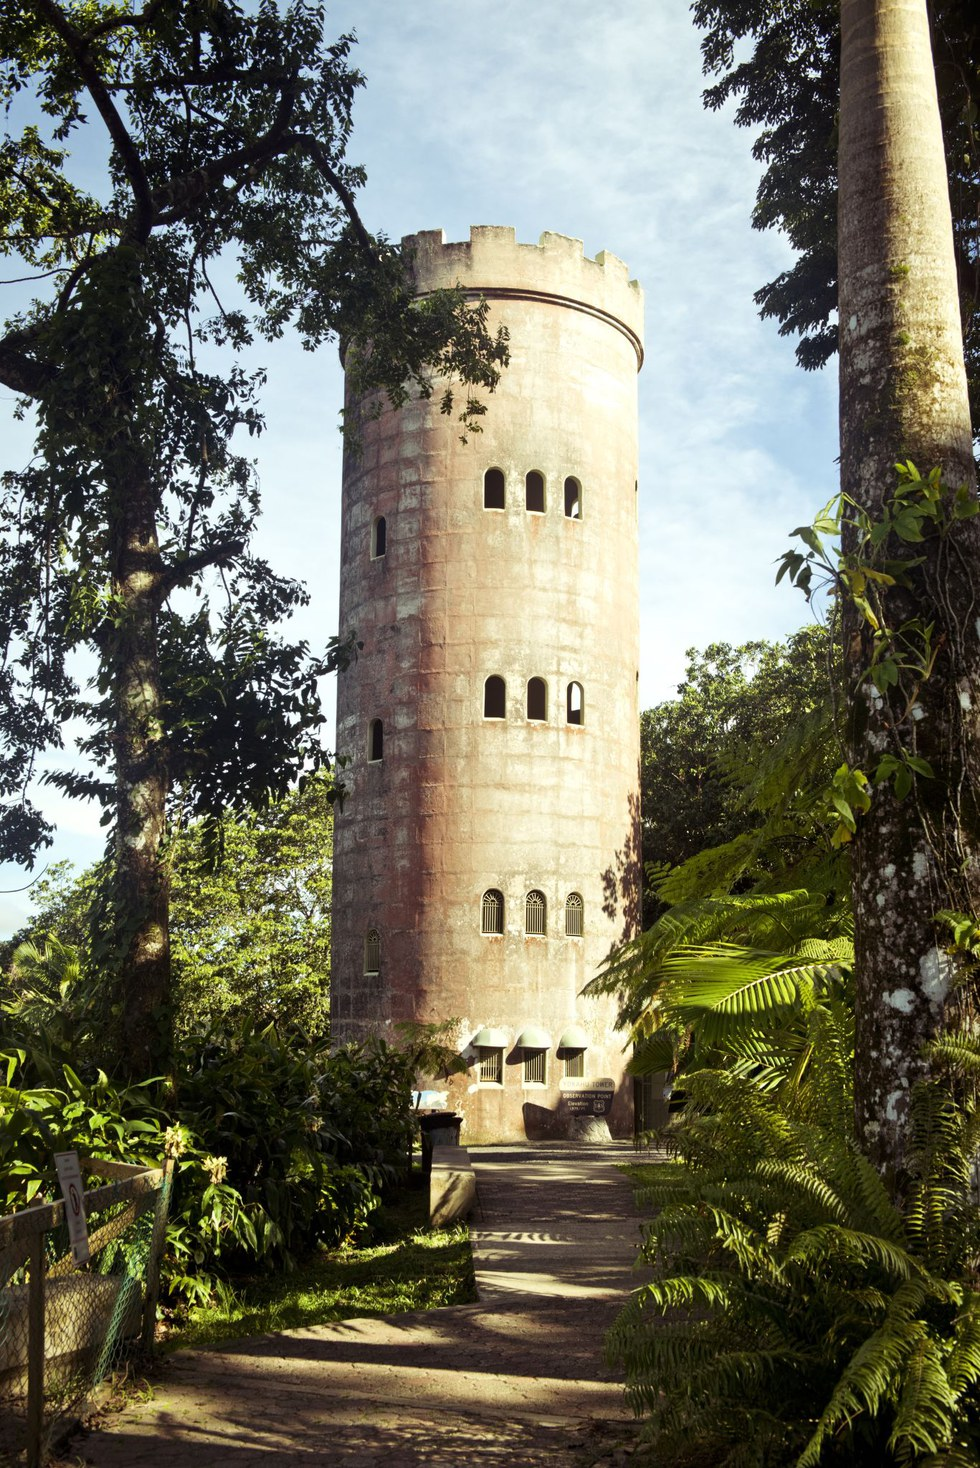 El Yunque National Forest's Mount Britton observation tower